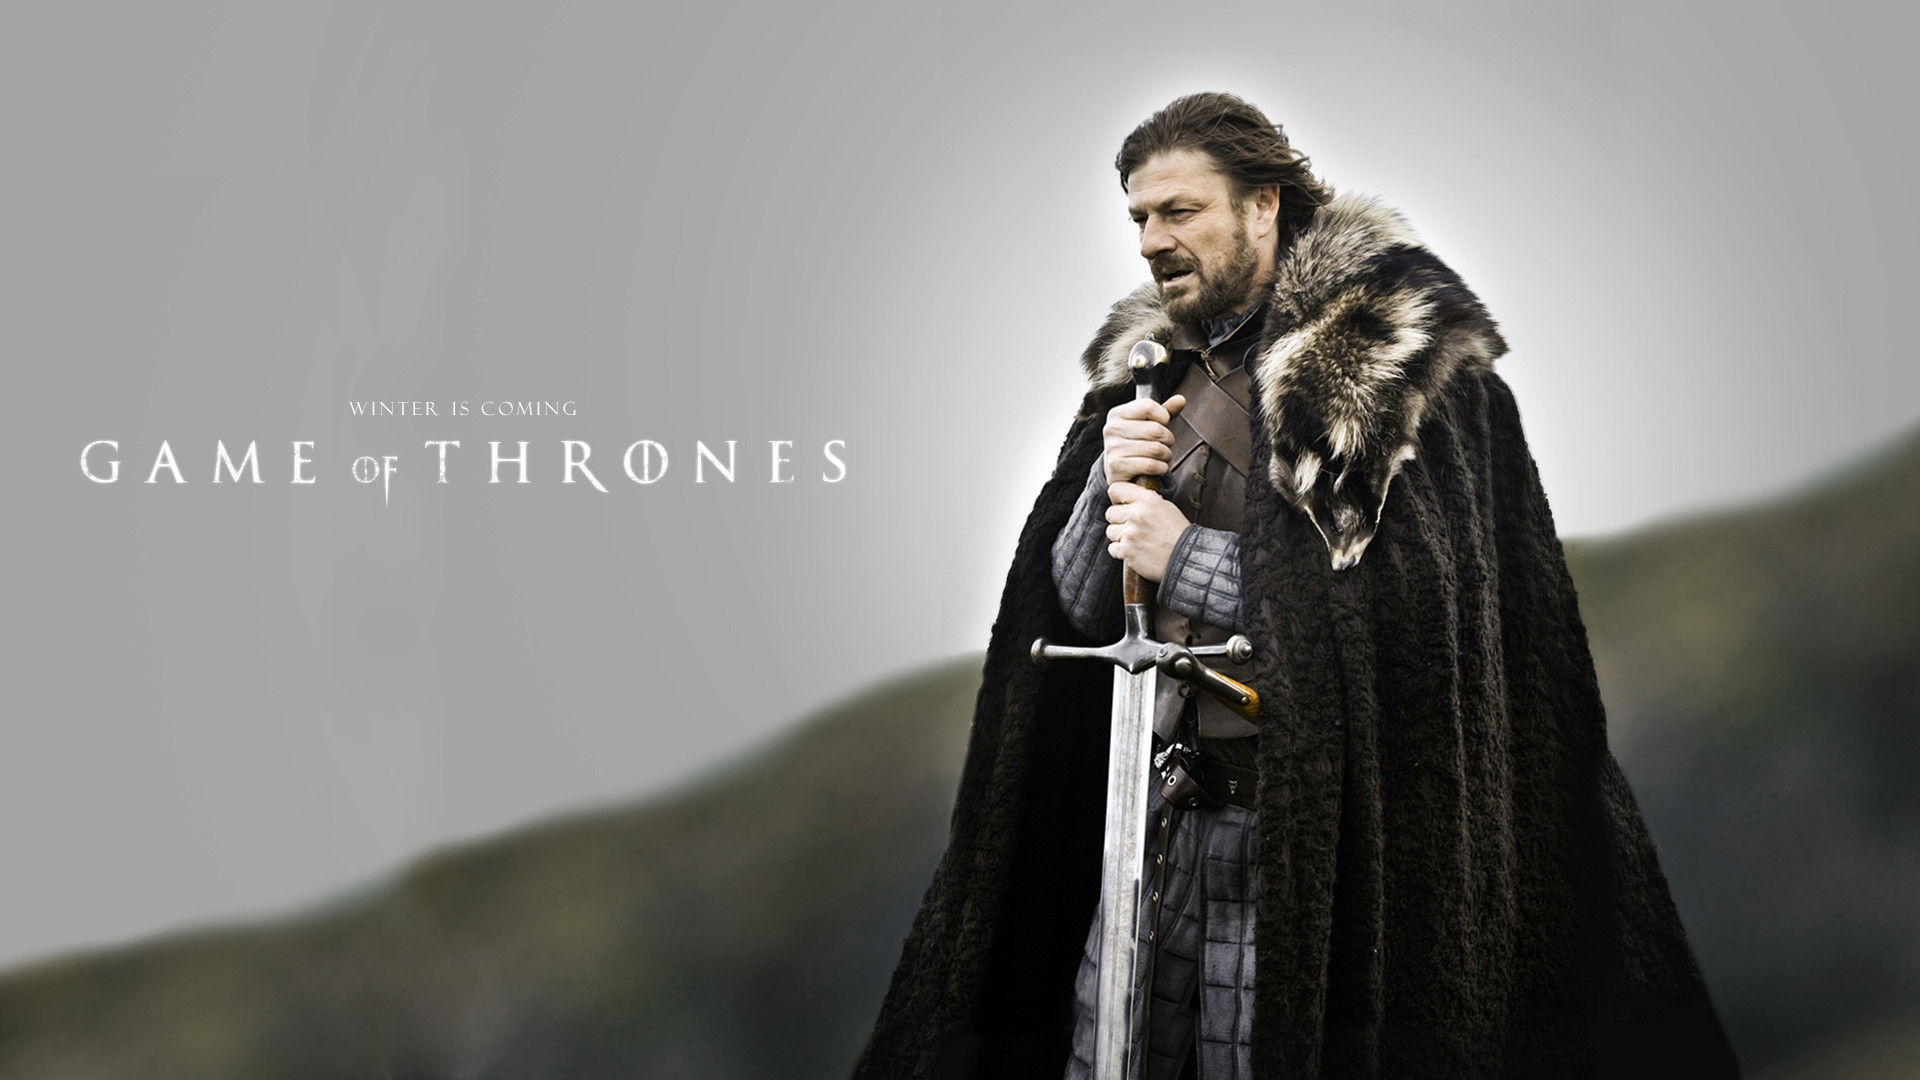 1920x1080 Winter Is Coming (motto) | Game of Thrones Wiki | FANDOM powered by Wikia